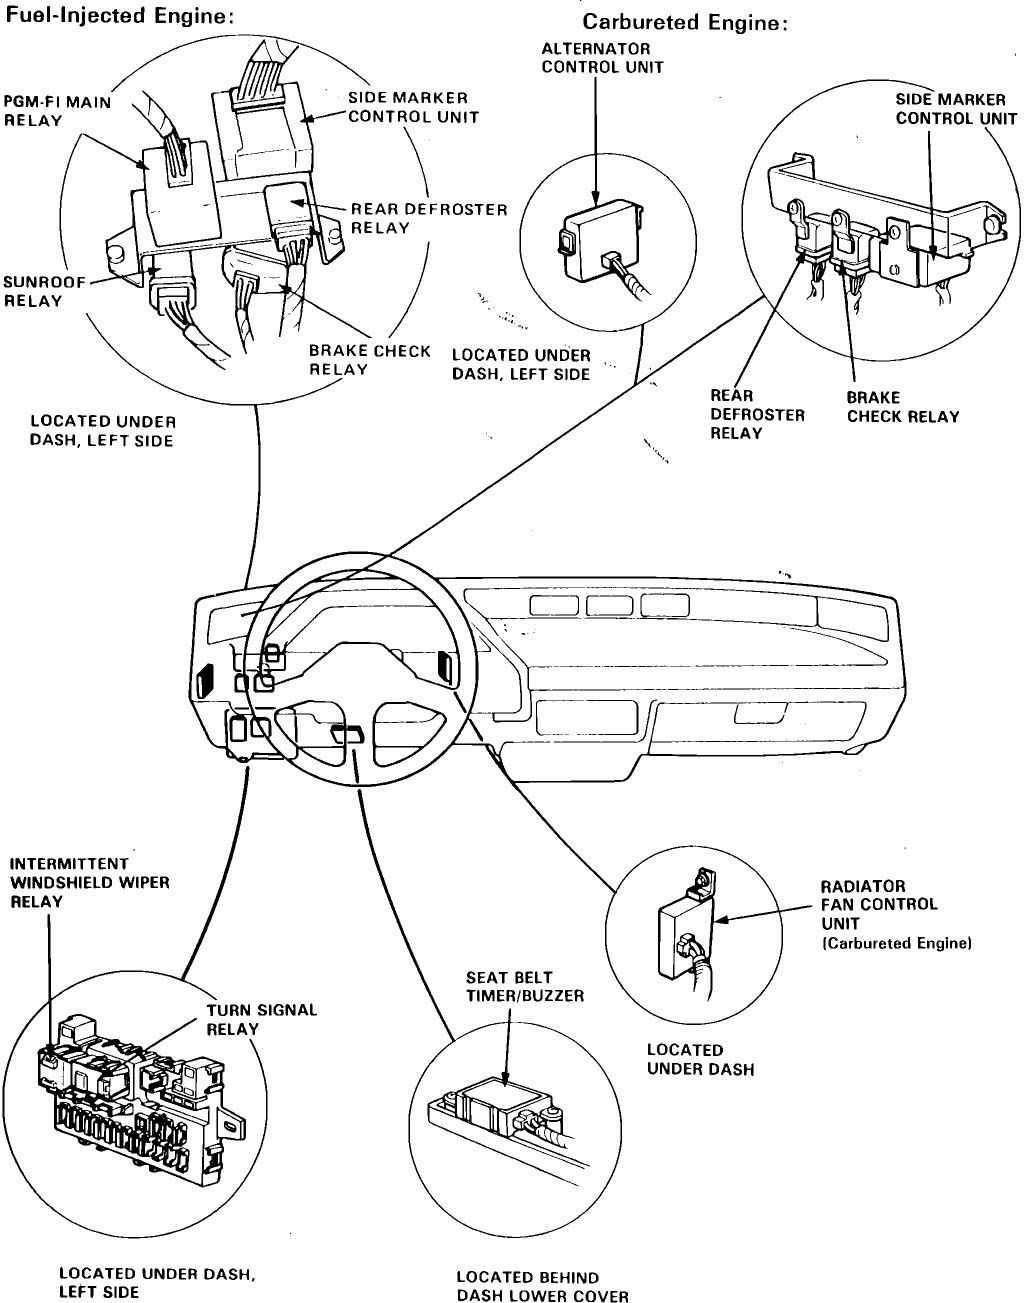 [TBQL_4184]  Honda Main Relay Wiring Diagram - bookingritzcarlton.info | Patent drawing,  Honda, Honda accord | Honda Accord Wiper Wiring Diagram |  | Pinterest